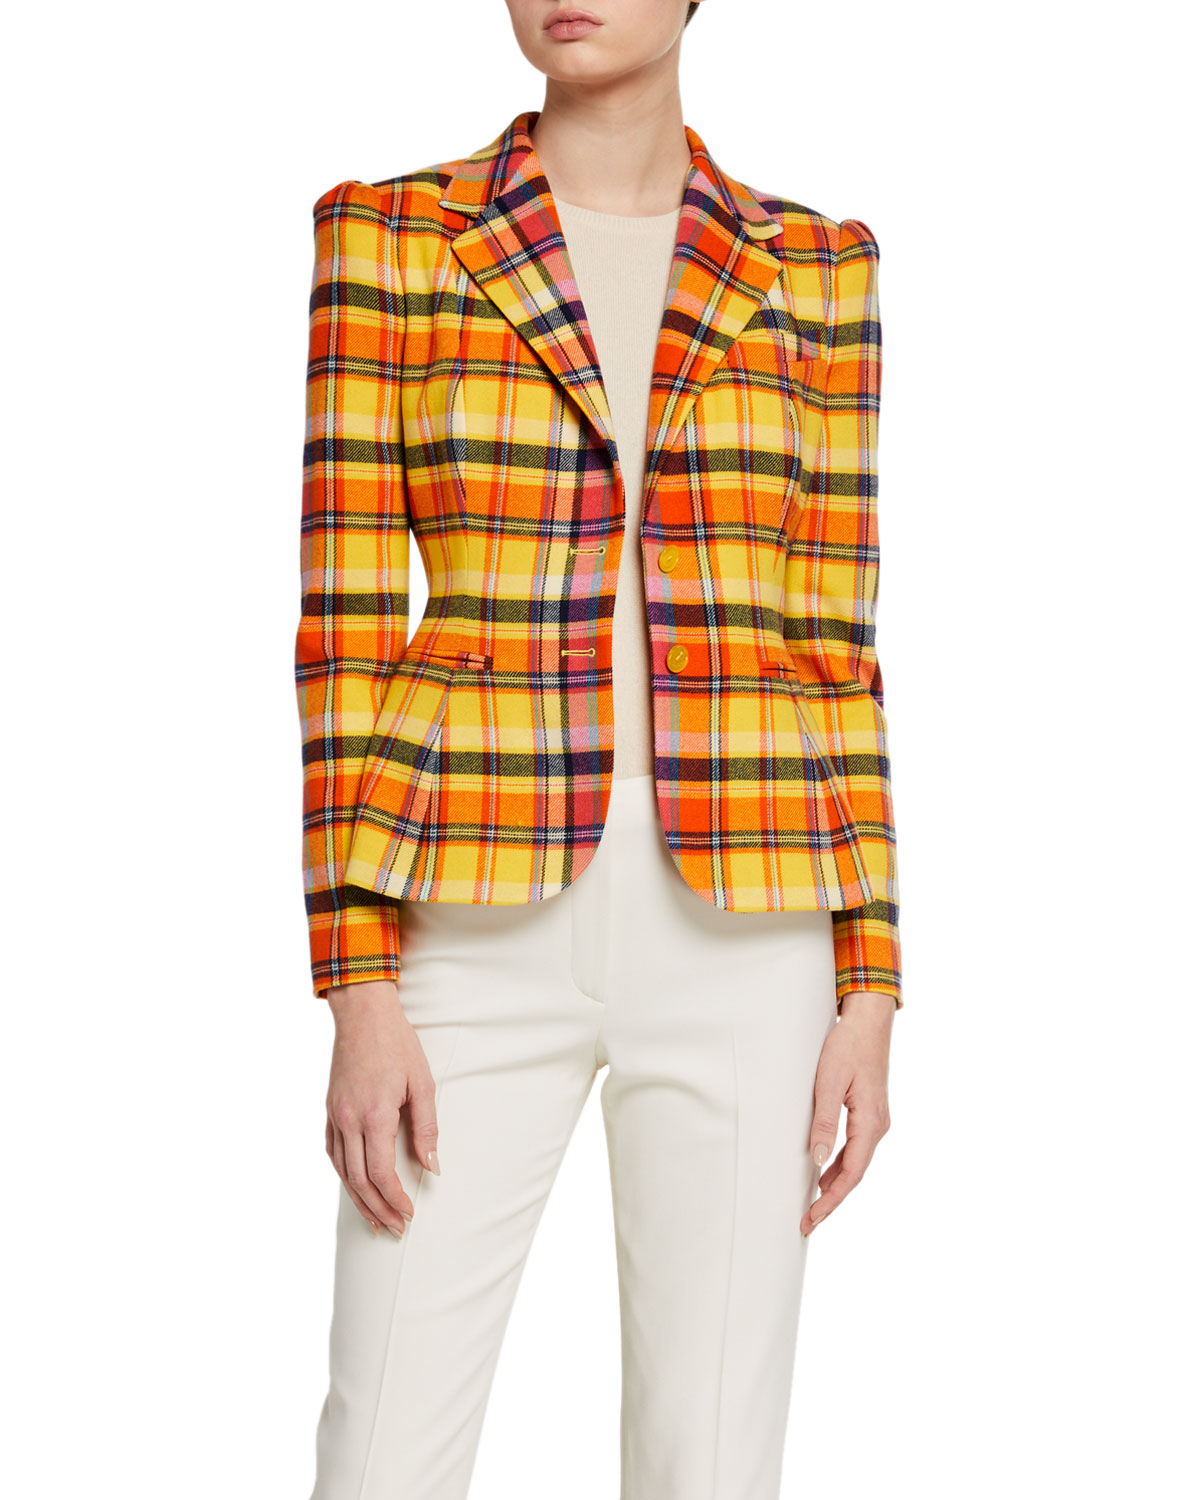 Ralph Lauren Collection Eloise Plaid Blazer Jacket